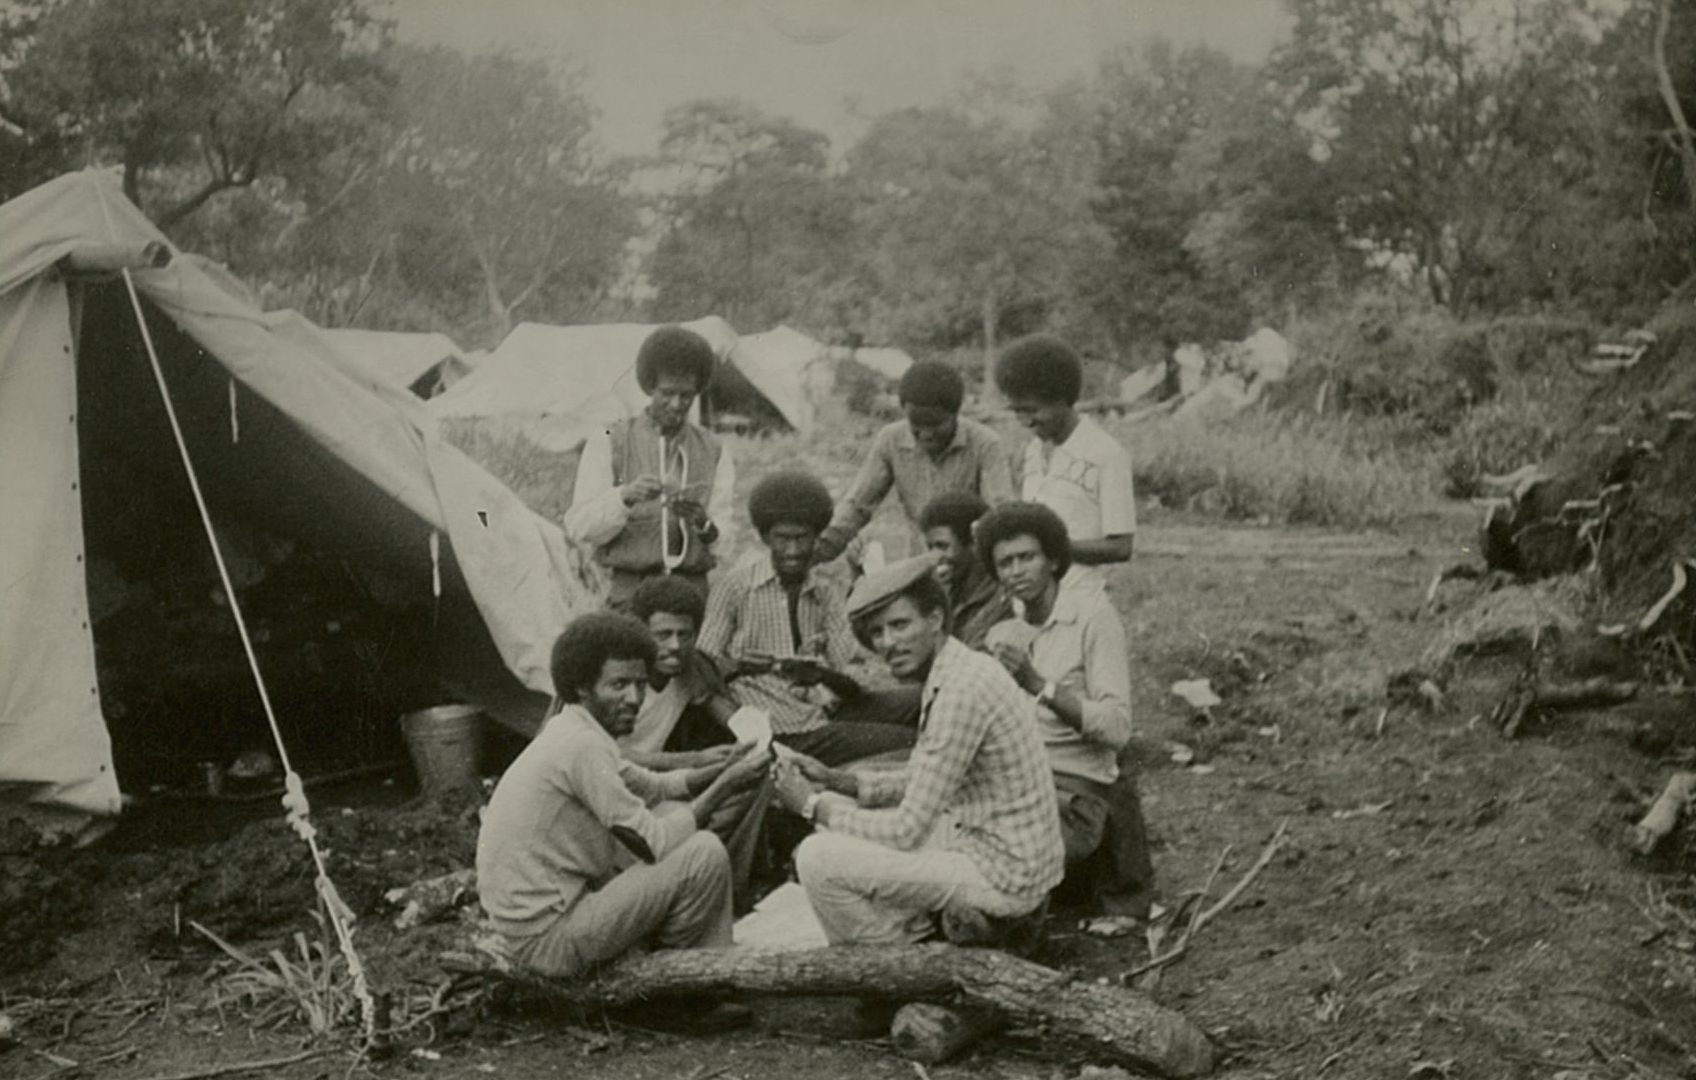 Black and white photo of black people camping